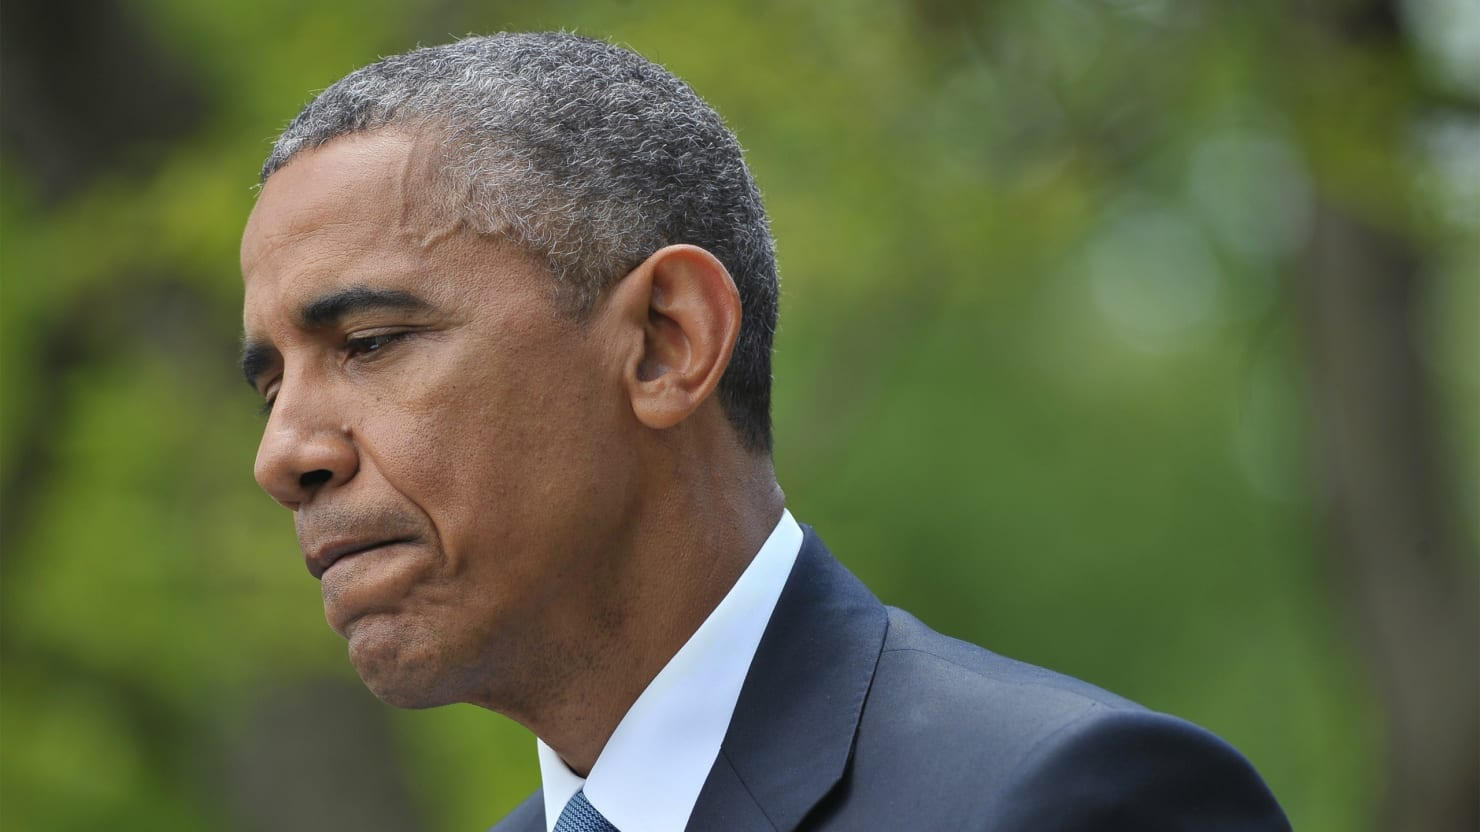 The Most Honest 15 Minutes Of Obama's Presidency